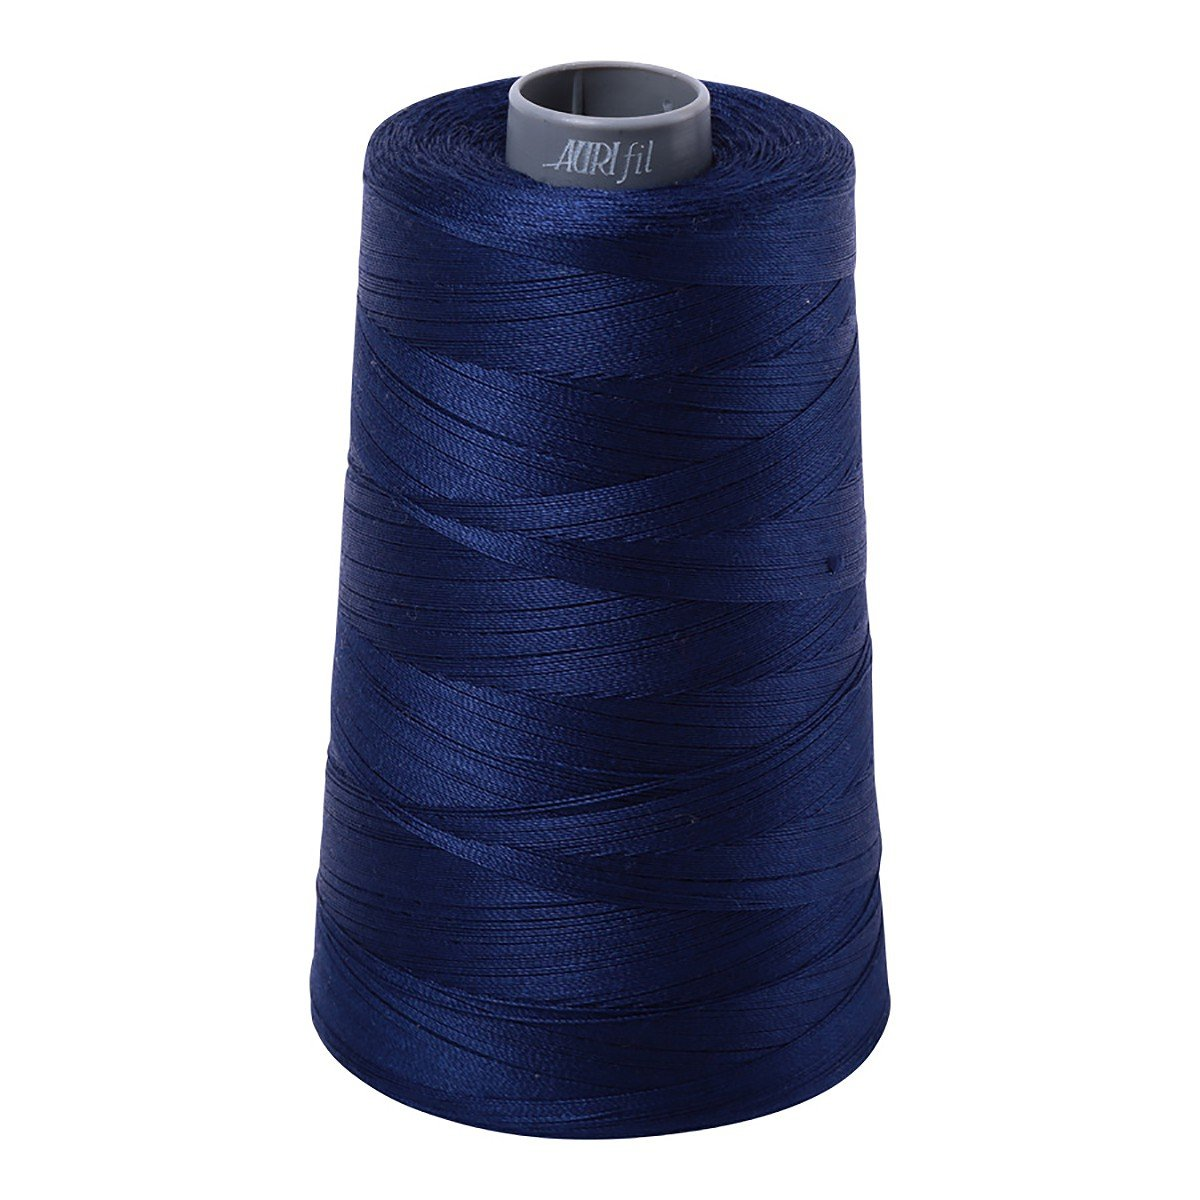 Mako (Cotton) Embroidery Thread 28wt 3609yds Dark Navy